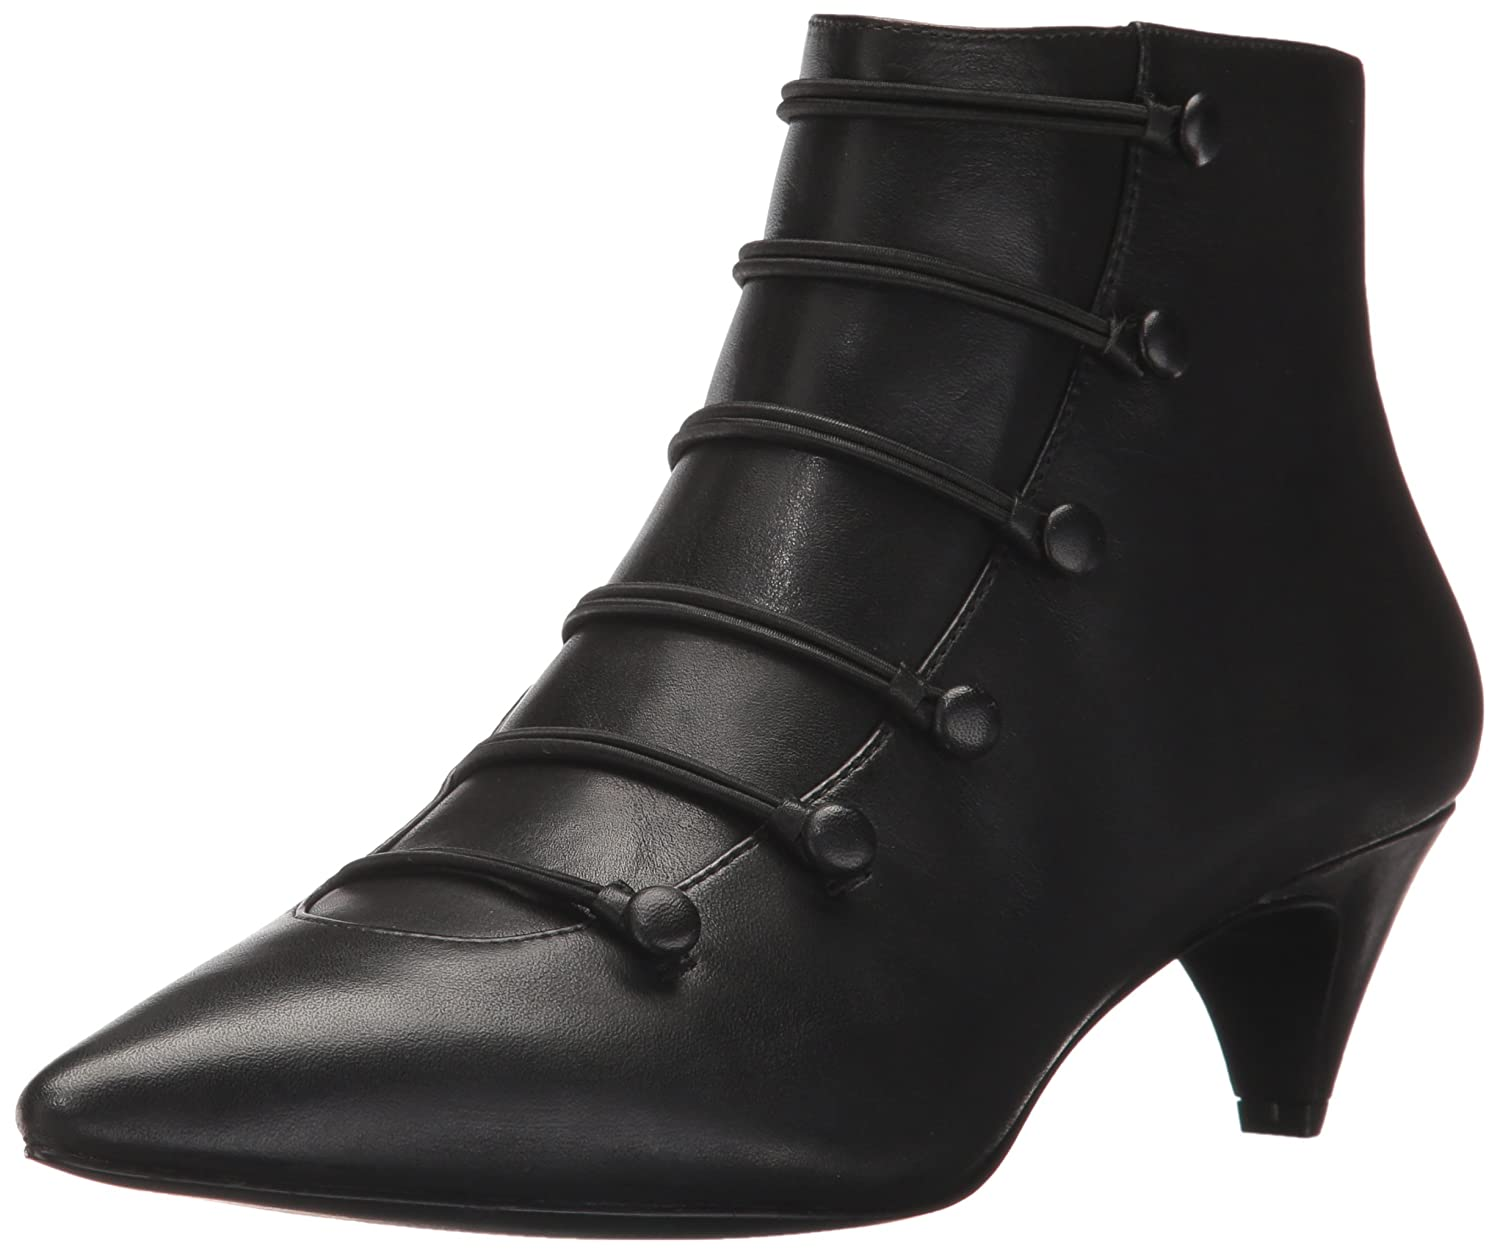 Nine West Women's Zadan Leather Ankle Boot B0711NKXSY 11 B(M) US|Black